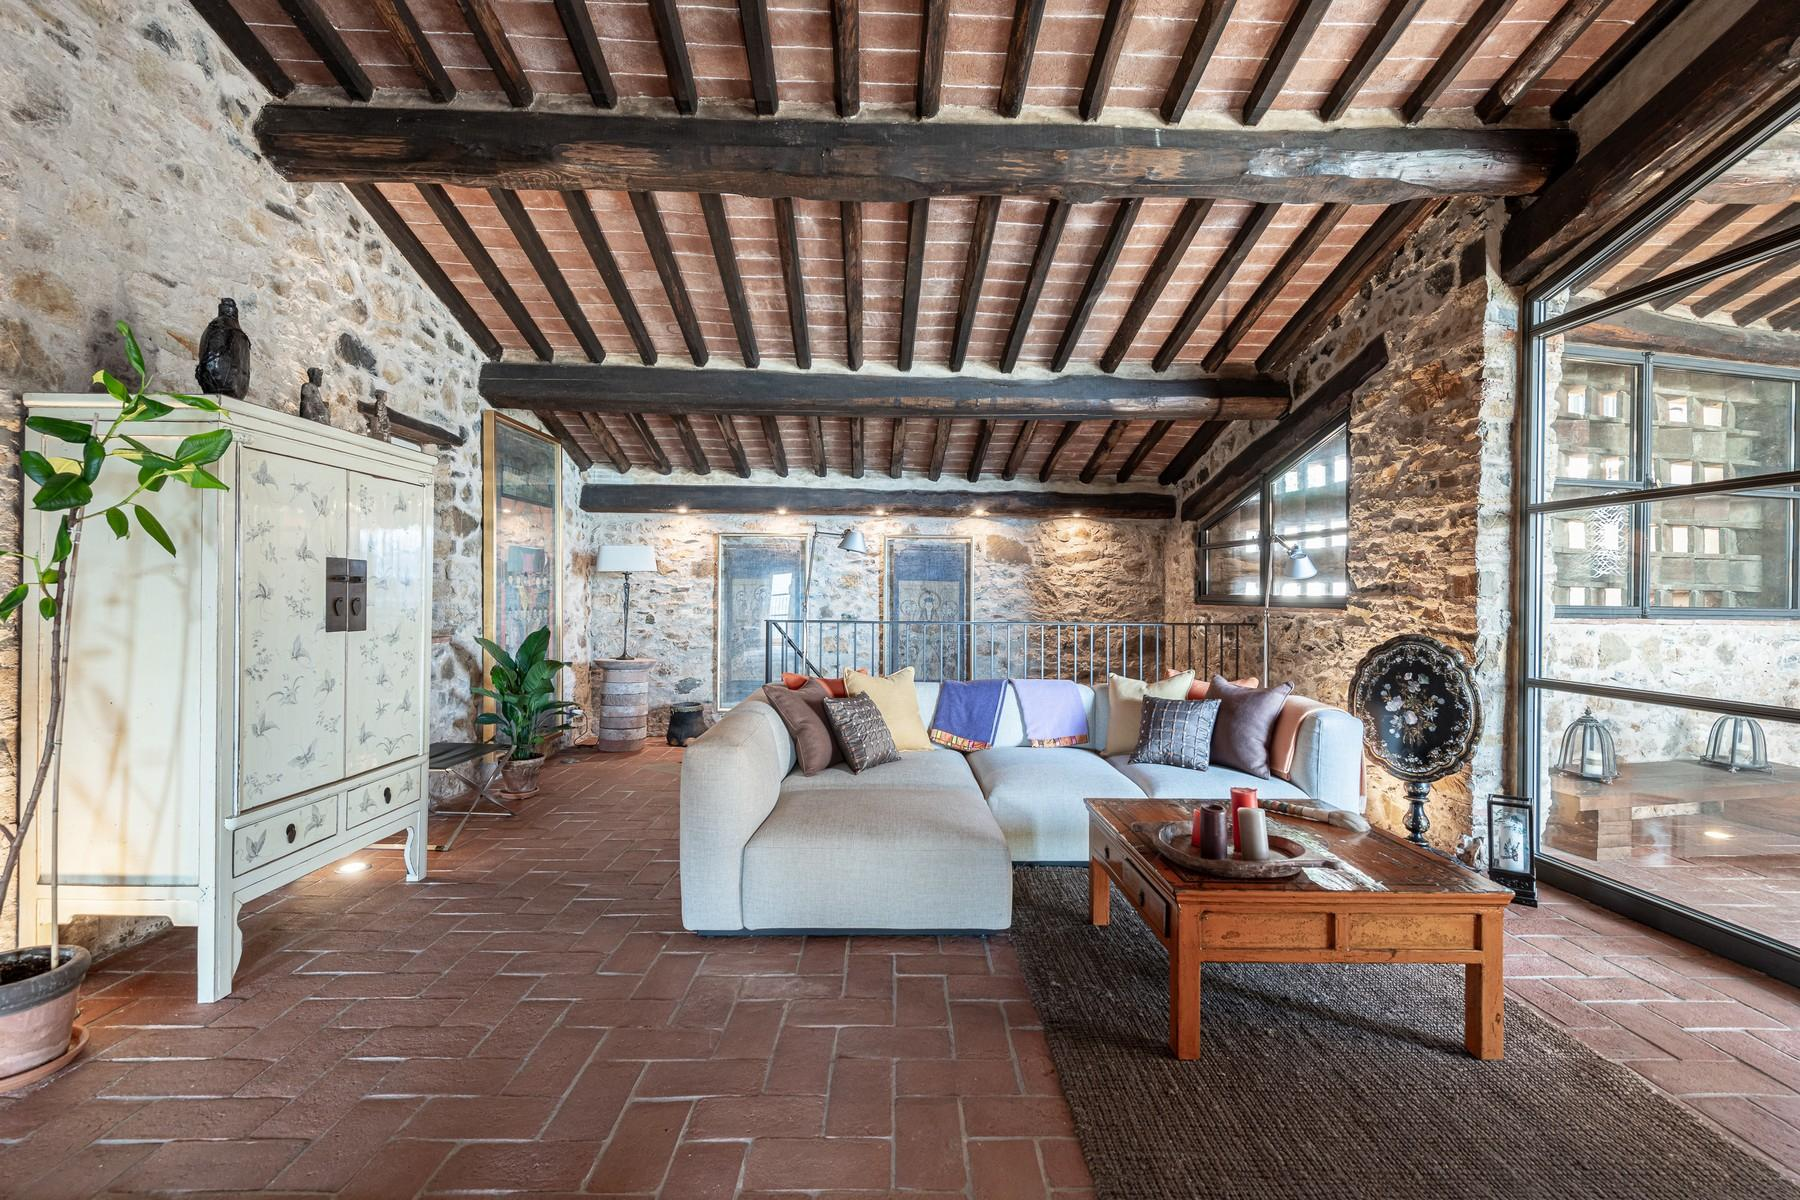 Magical farmhouse with stunning views on the hills of Lucca - 20